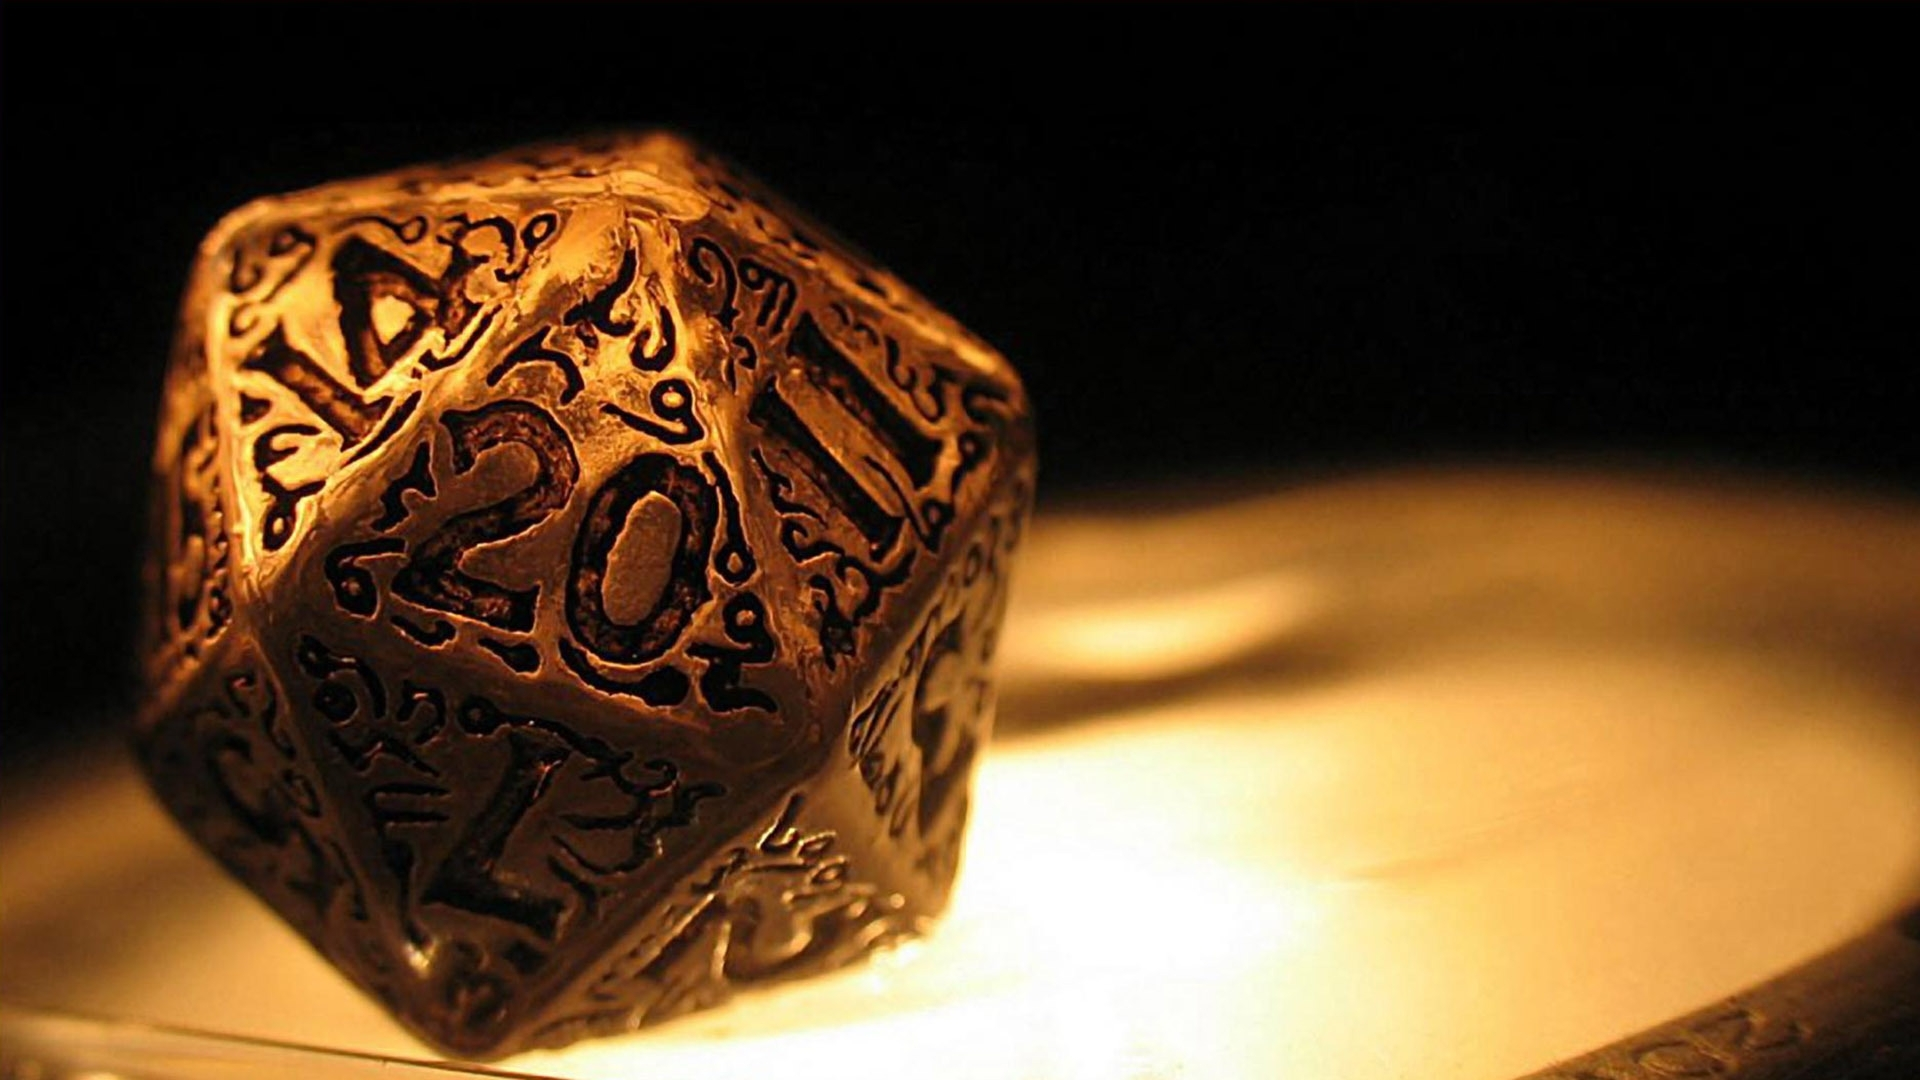 dungeons & dragons dice wallpaper #5604